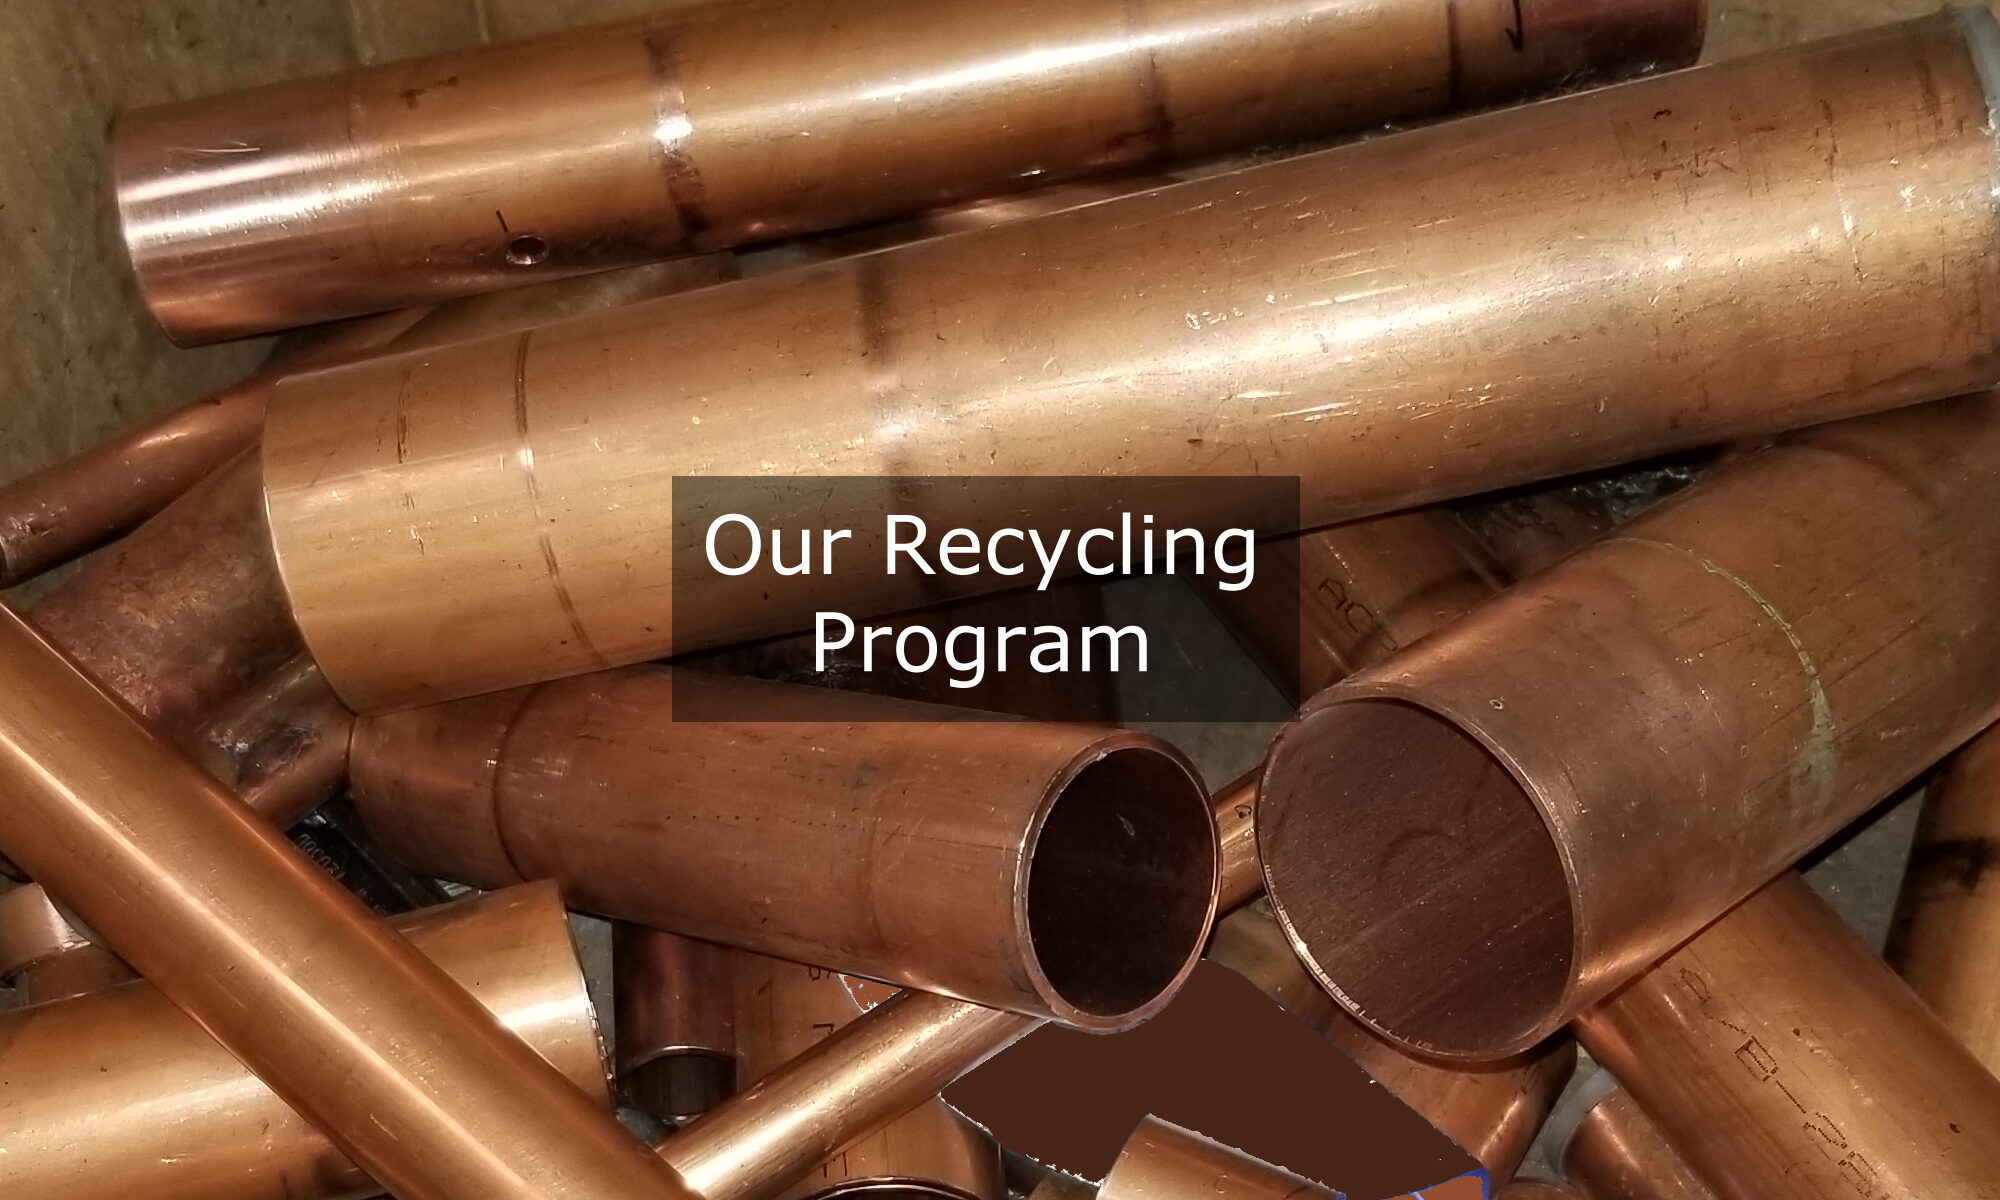 Our Recycling Program